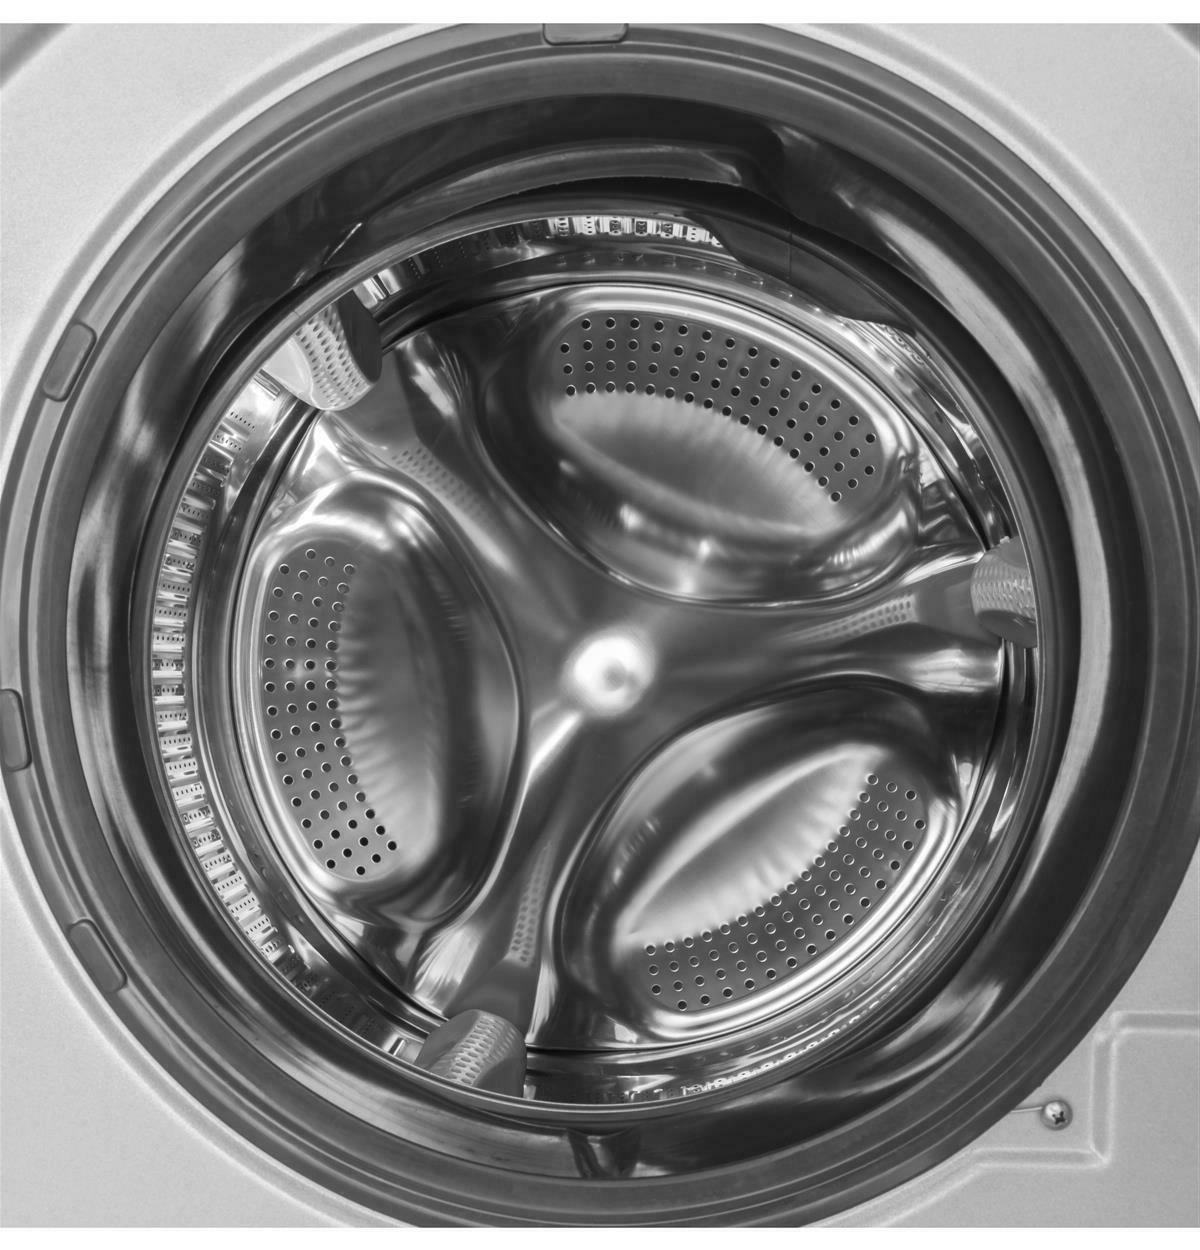 Haier 24-Inch Wide Load Washer/Dryer Silver HLC1700AXS